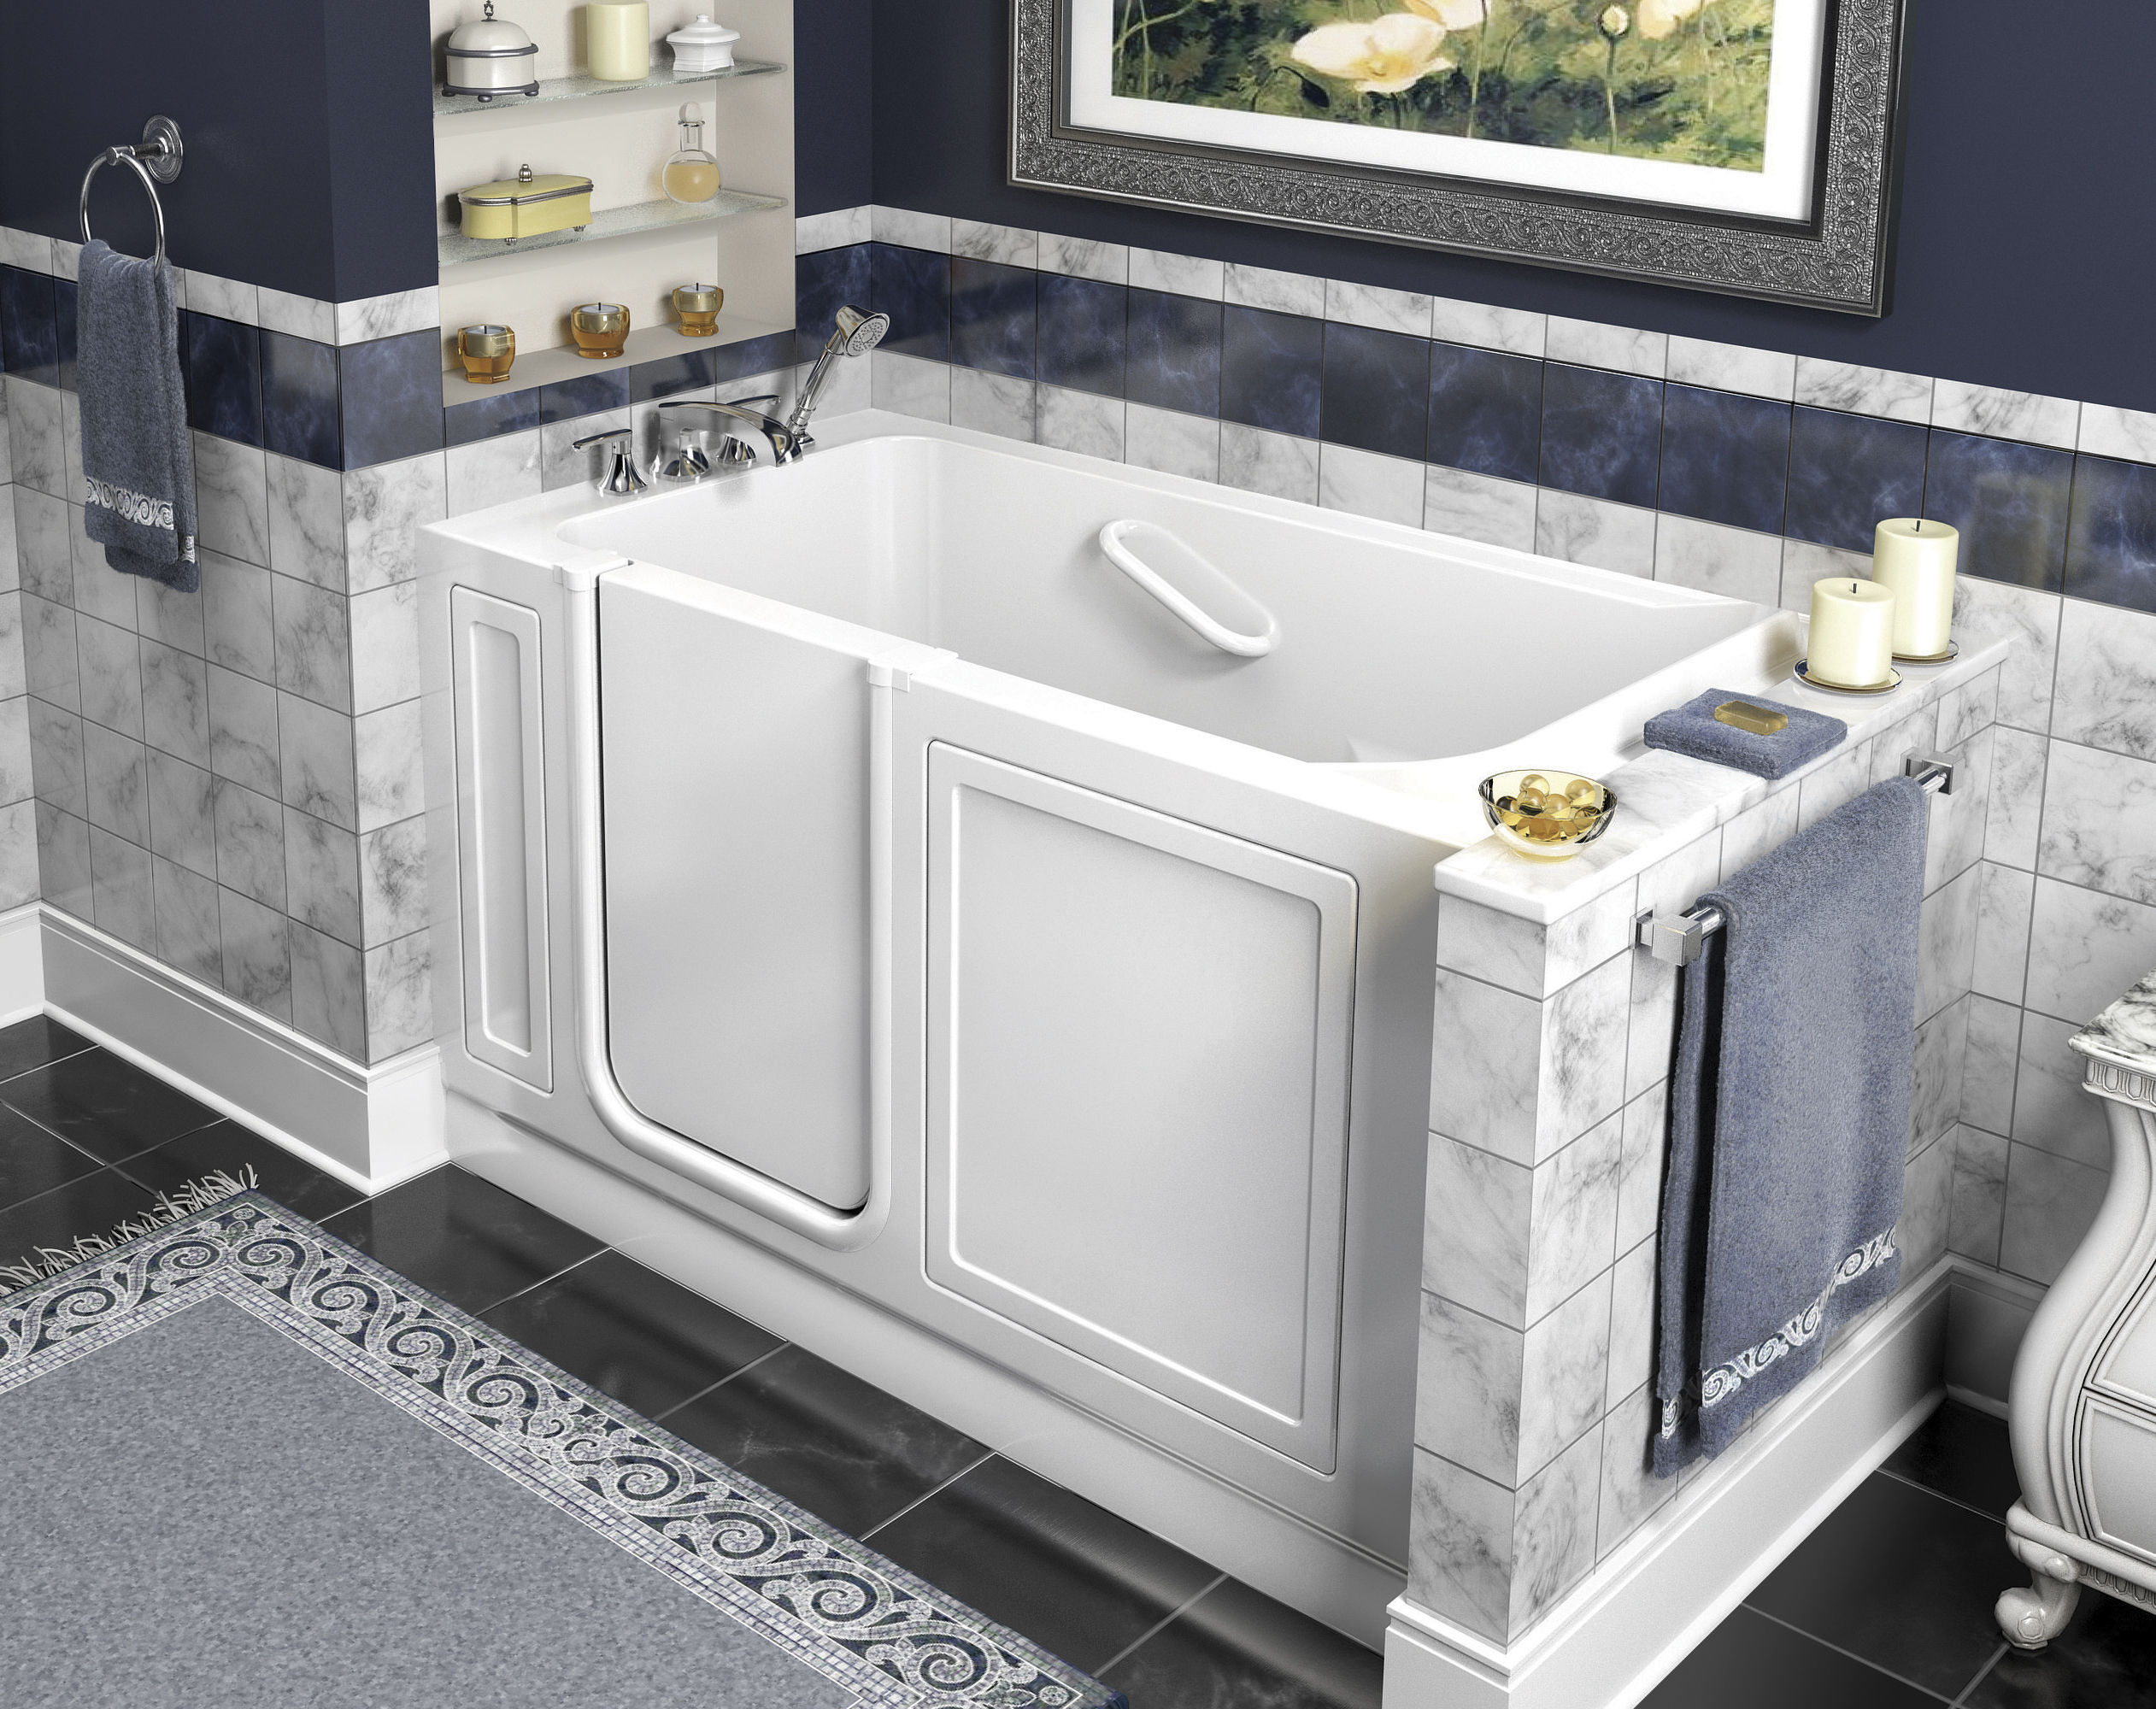 manufacturers jetted bath prices jacuzzi home bathtubs bathtub standard in tub american freestanding whirlpool drop